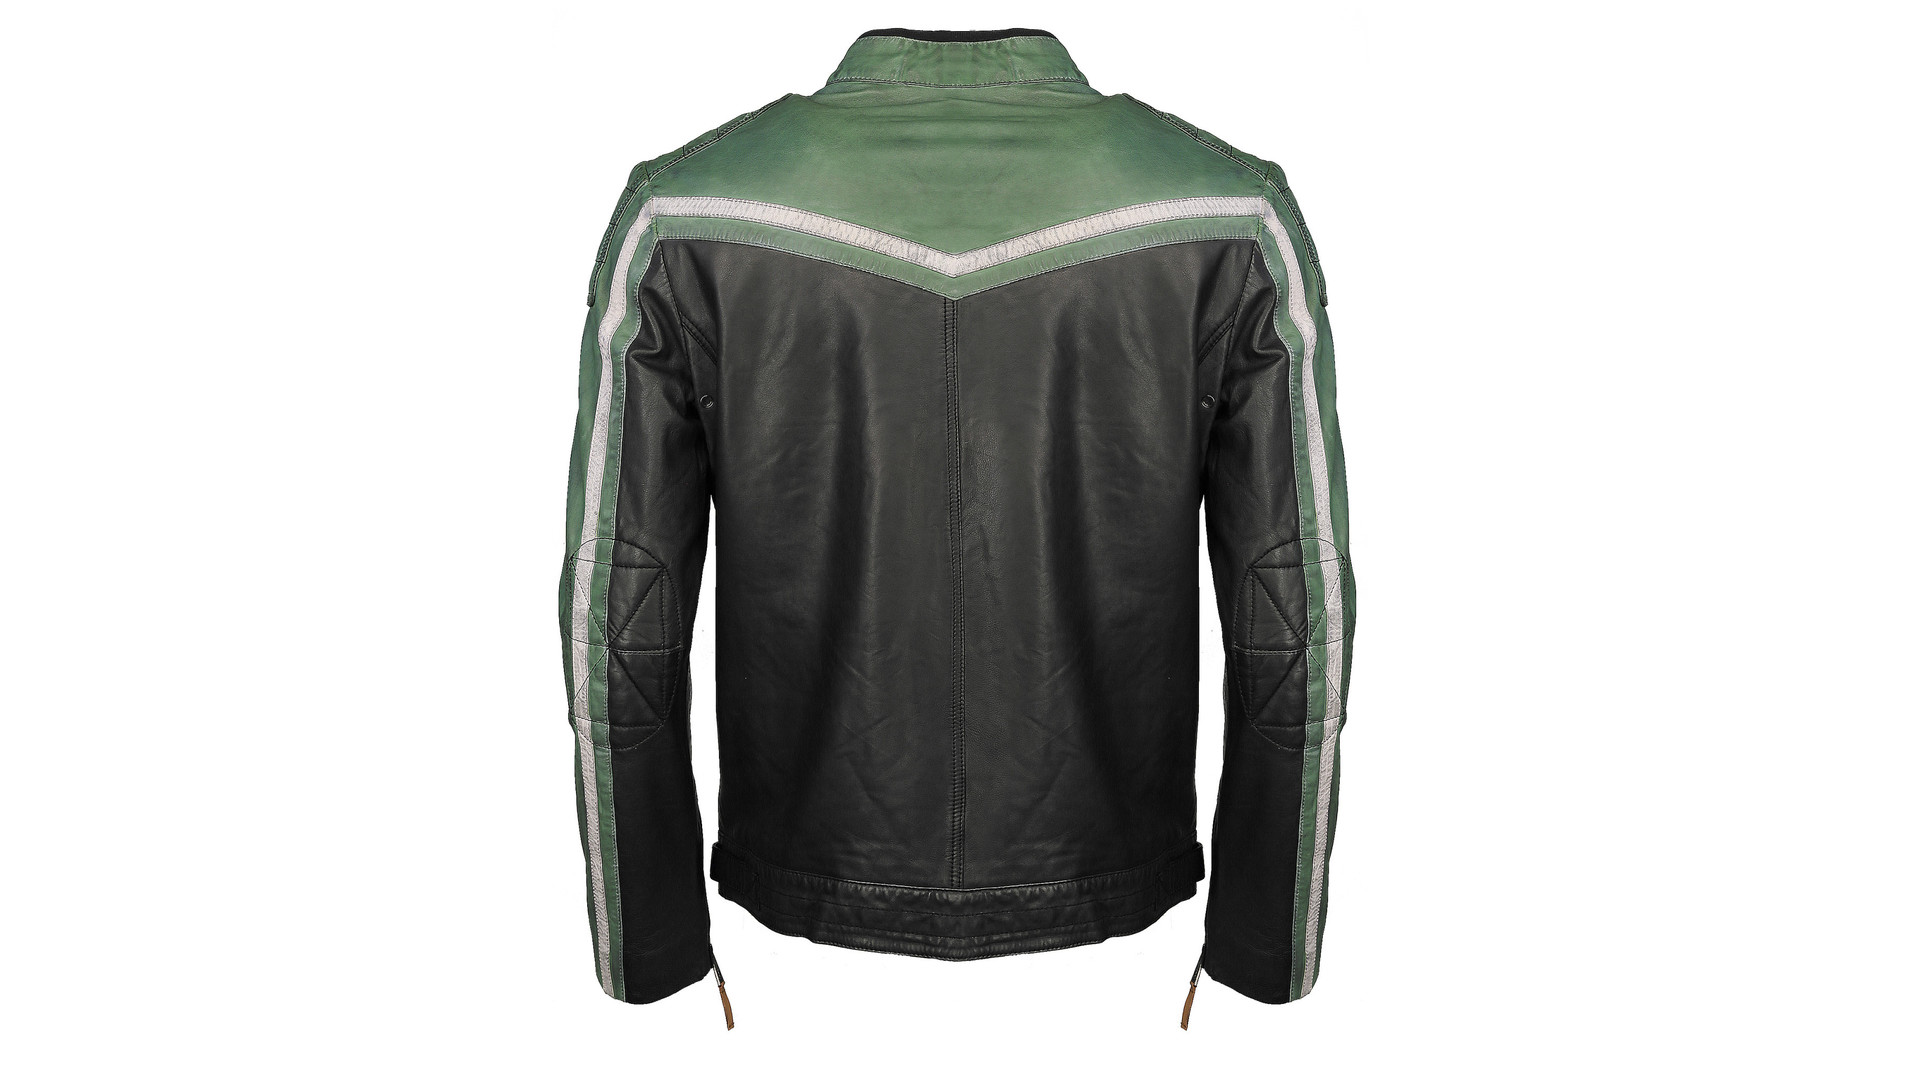 Top Gun TG-1005 Racing jacket black/green/cream